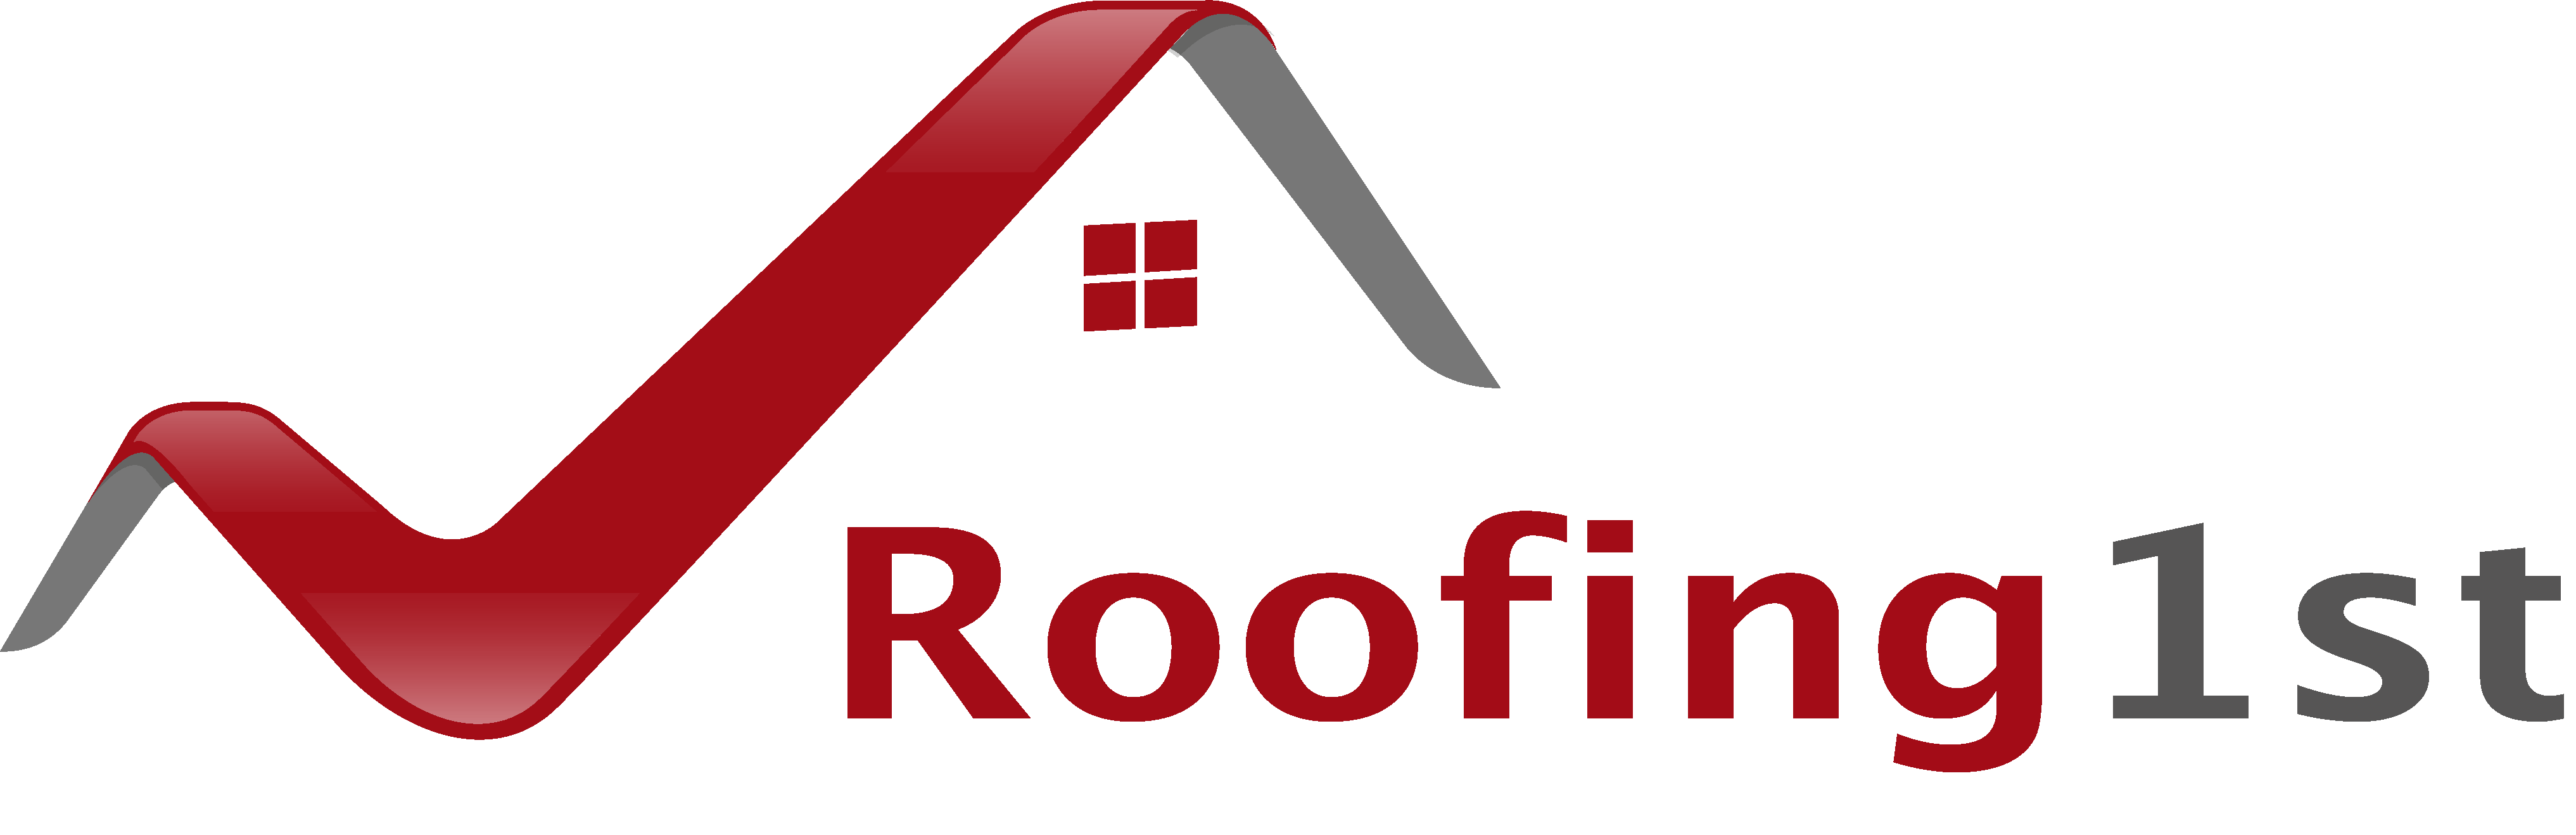 Roofing 1st